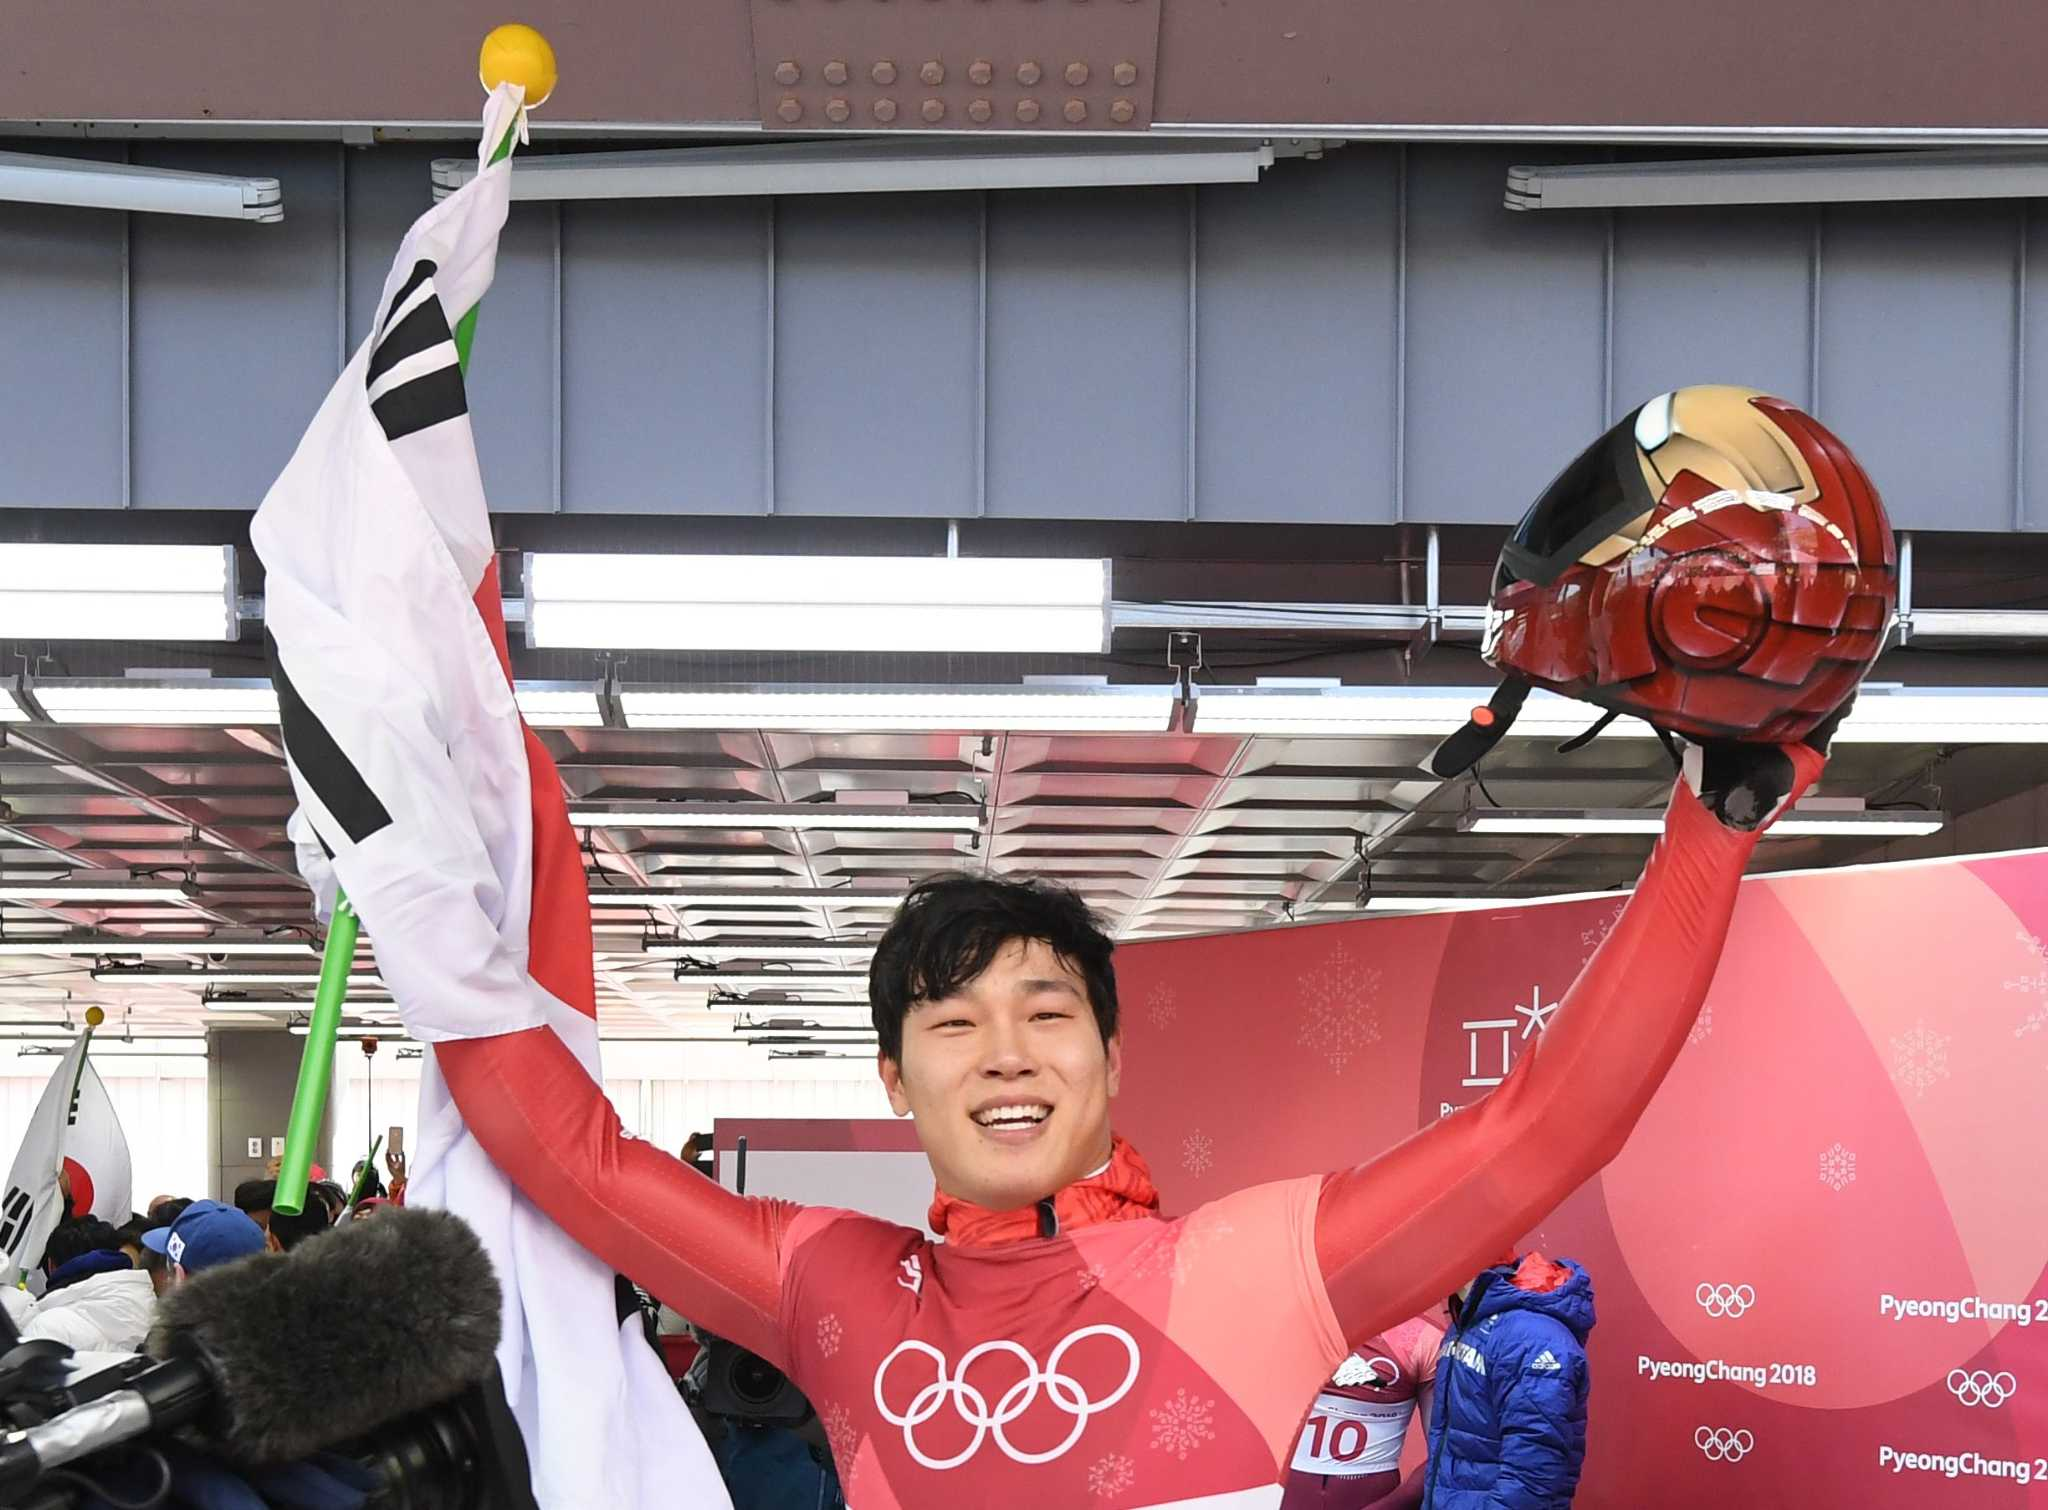 The Latest: South Korea's Yun Sungbin wins Olympic gold in skeleton